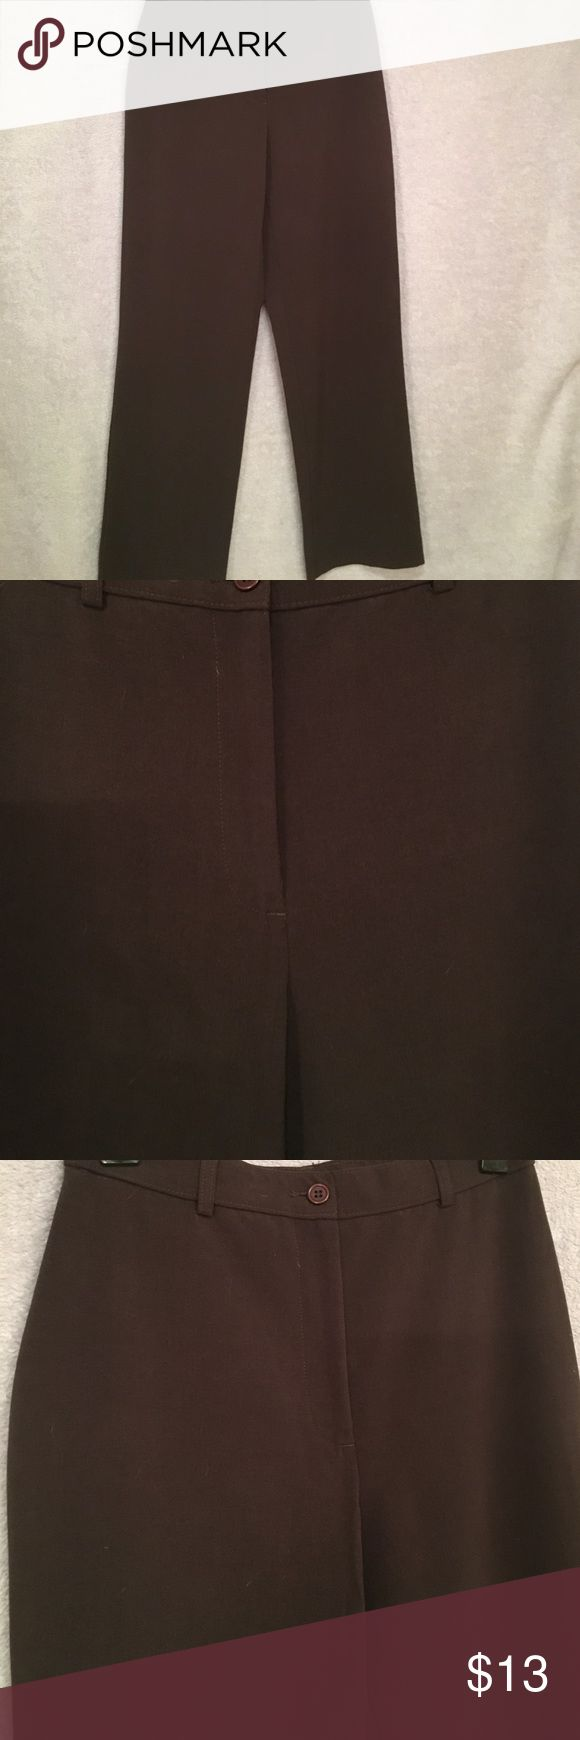 Dark Brown Slacks Dark brown slacks with front button and zip clothes. Belt loops. Average length. Great for the workplace! Pants Trousers